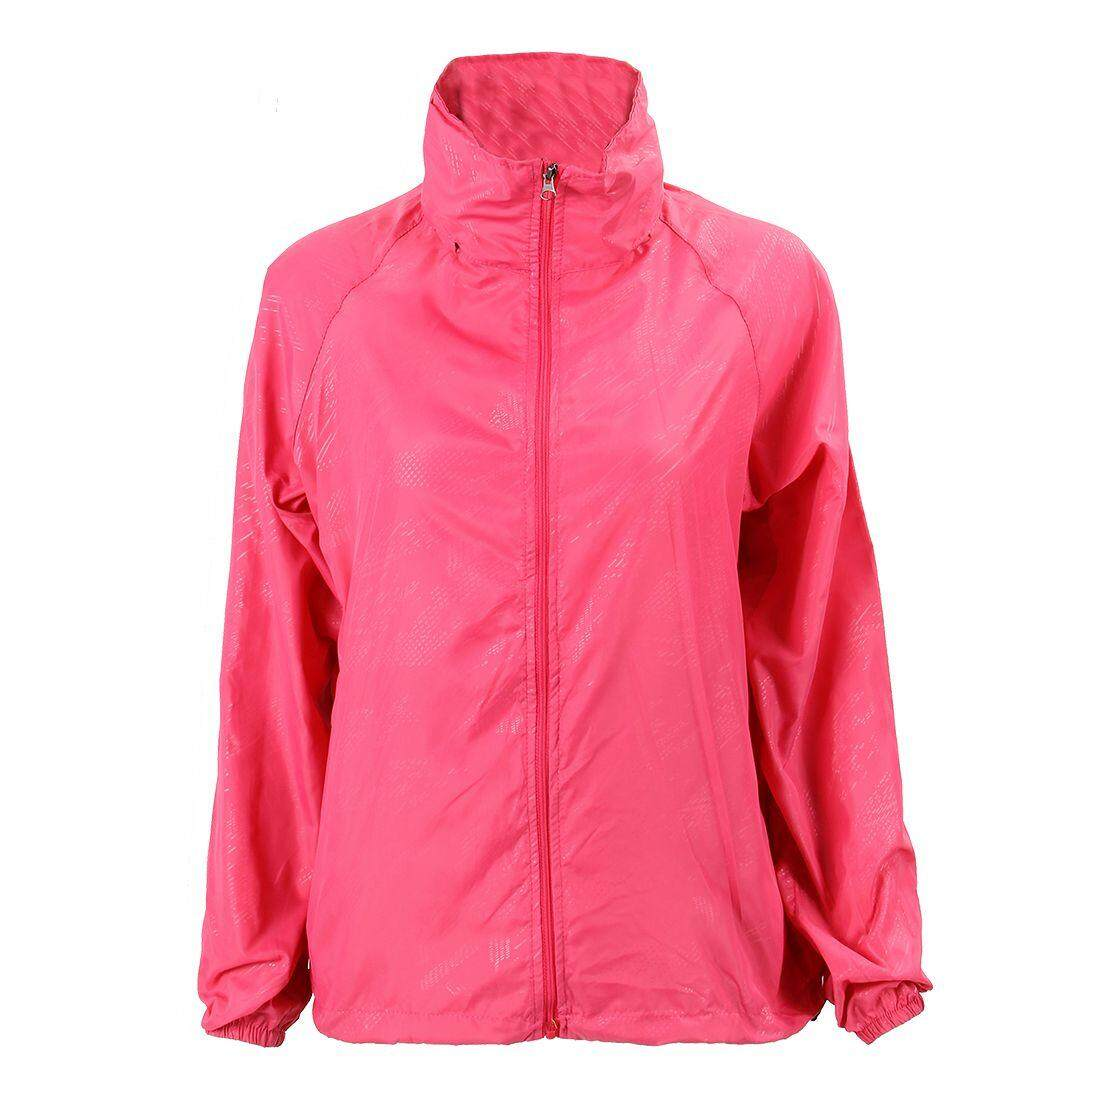 Outdoor Unisex Cycling Running Waterproof Windproof Jacket Rain Coat -Rose Red